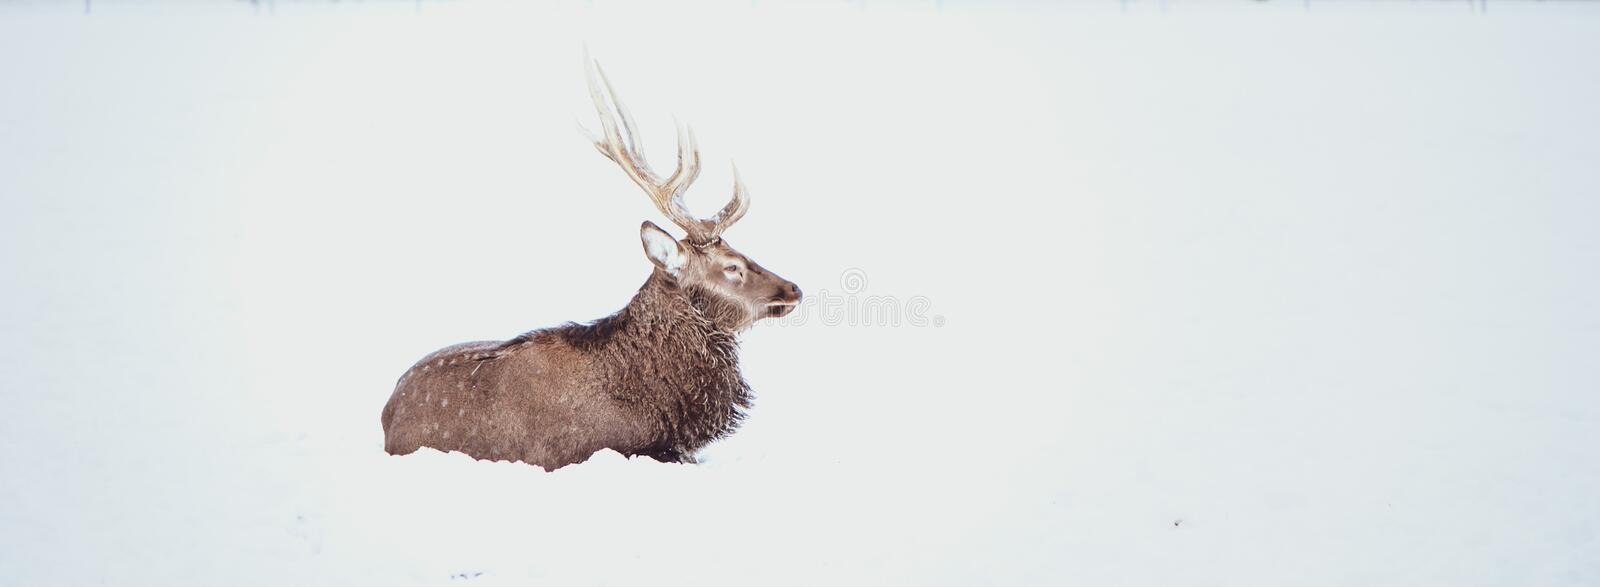 Noble Sika deer ,  Cervus nippon, spotted deer ,  lying on the snow royalty free stock photo